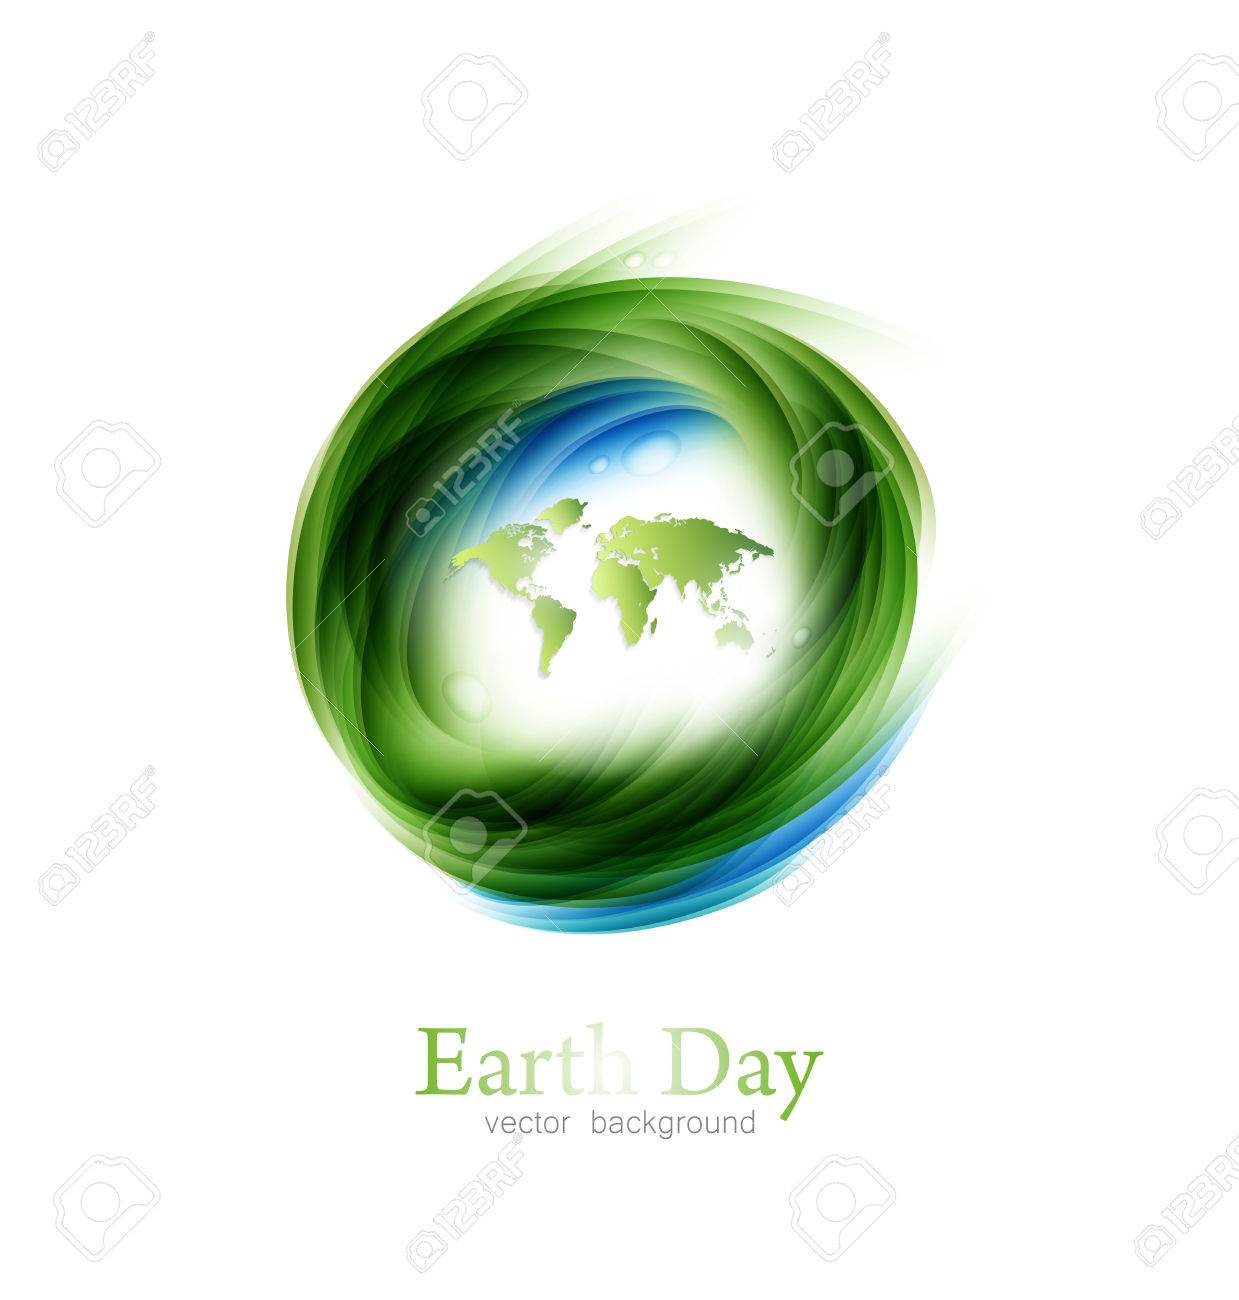 Save the planet earth day environment green world map background save the planet earth day environment green world map background design element foto de archivo gumiabroncs Images